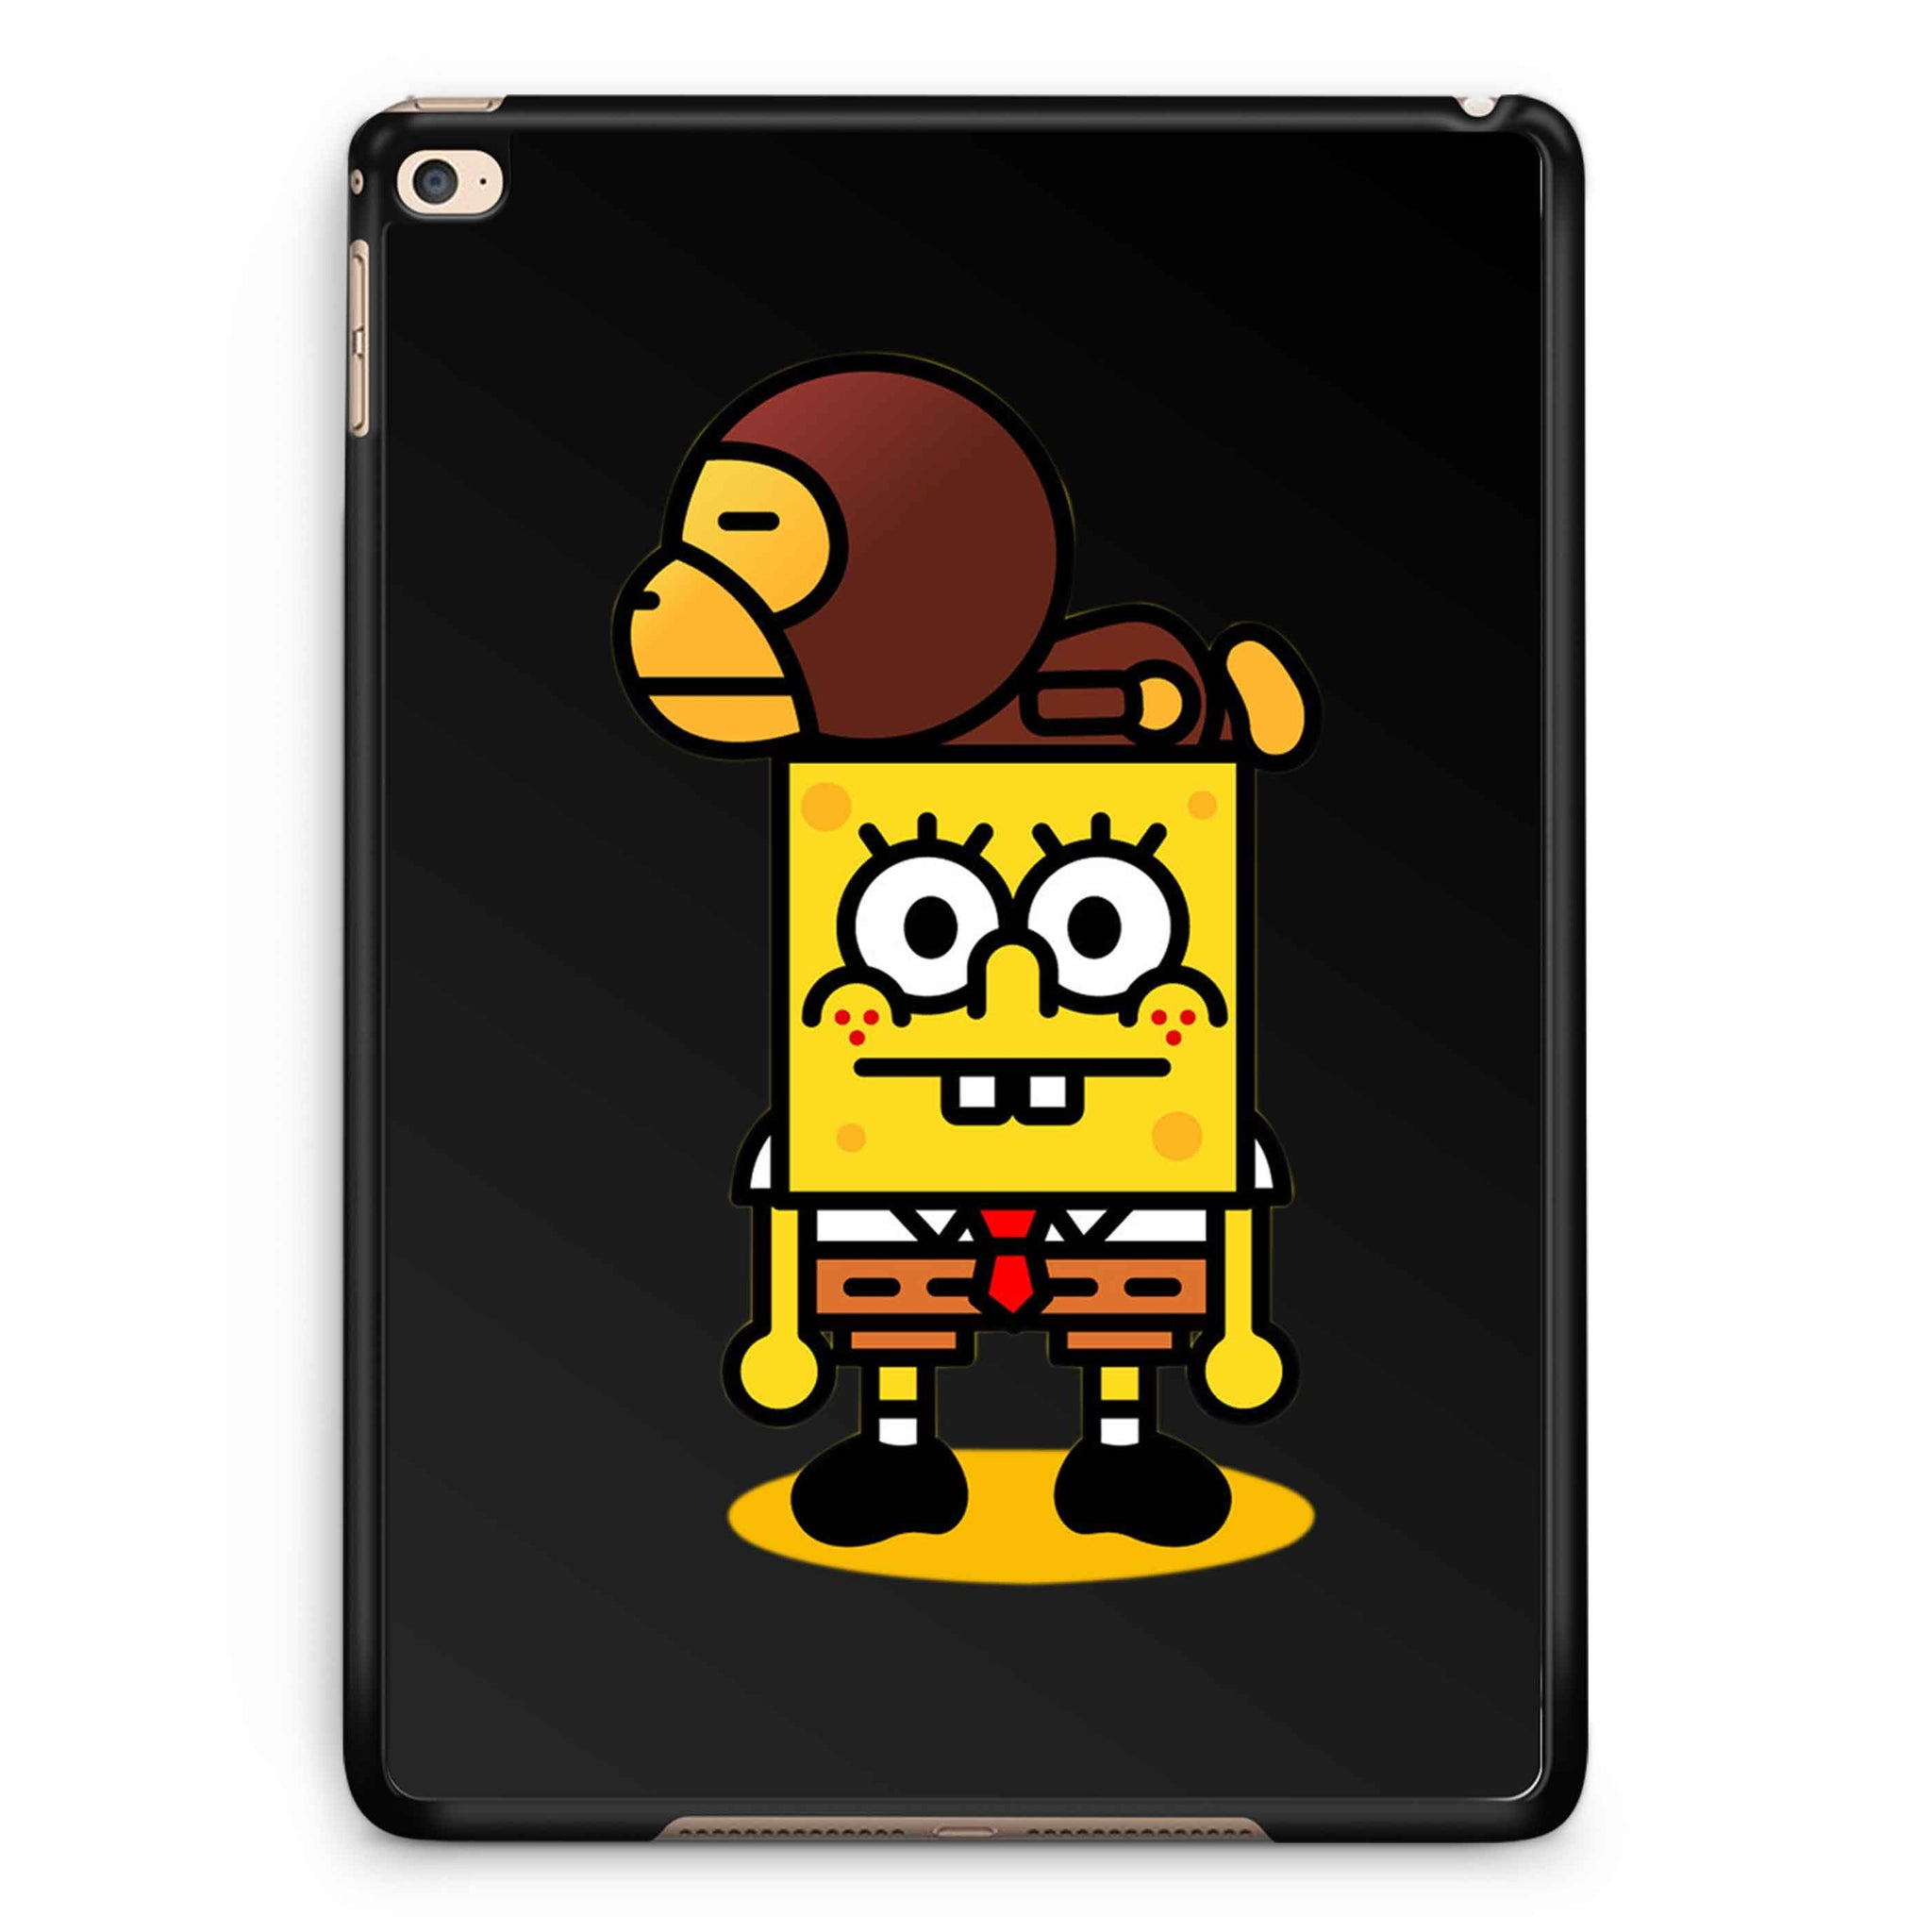 Bape X Spongebob iPad 2 / 3 / 4 / 5 / 6| iPad Air / Air 2 | iPad Mini 1 / 2 / 3 / 4 | iPad Pro Case